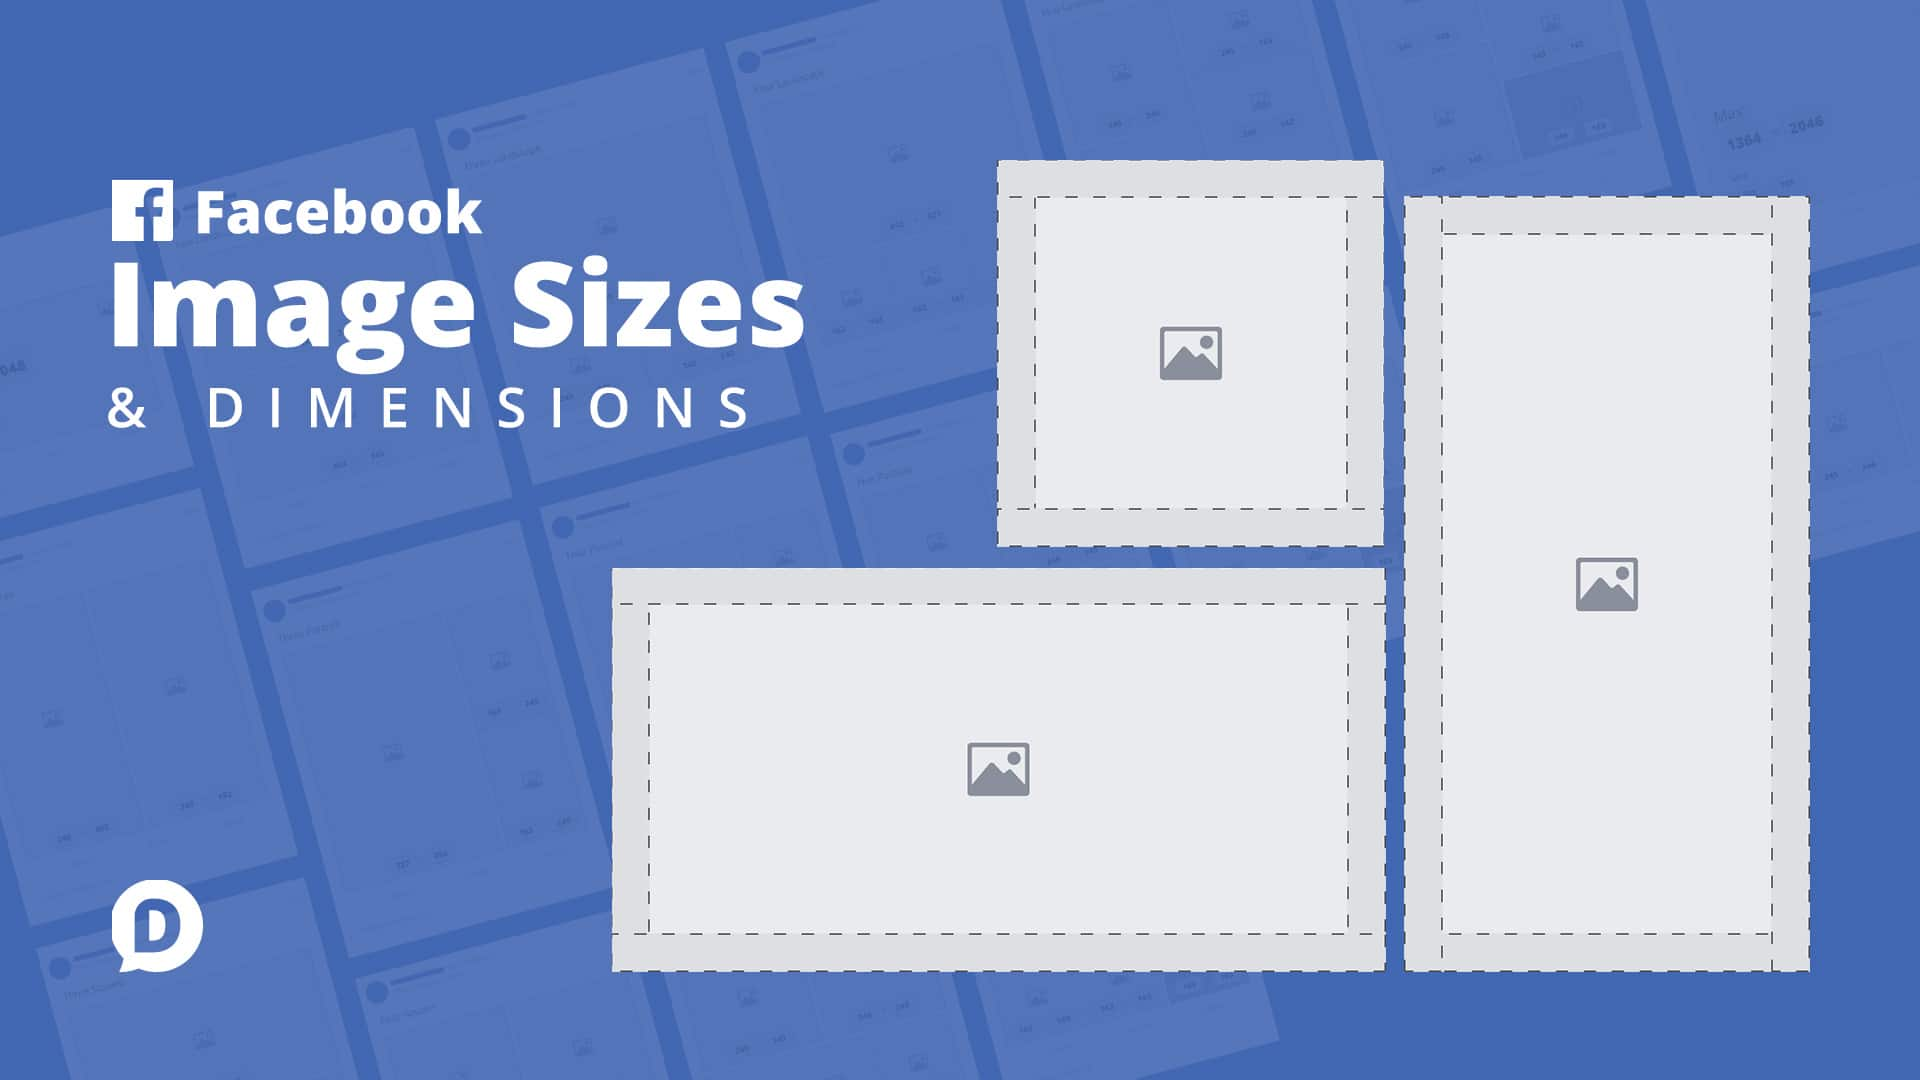 Facebook Image Sizes & Dimensions 2019: Everything You Need to Know